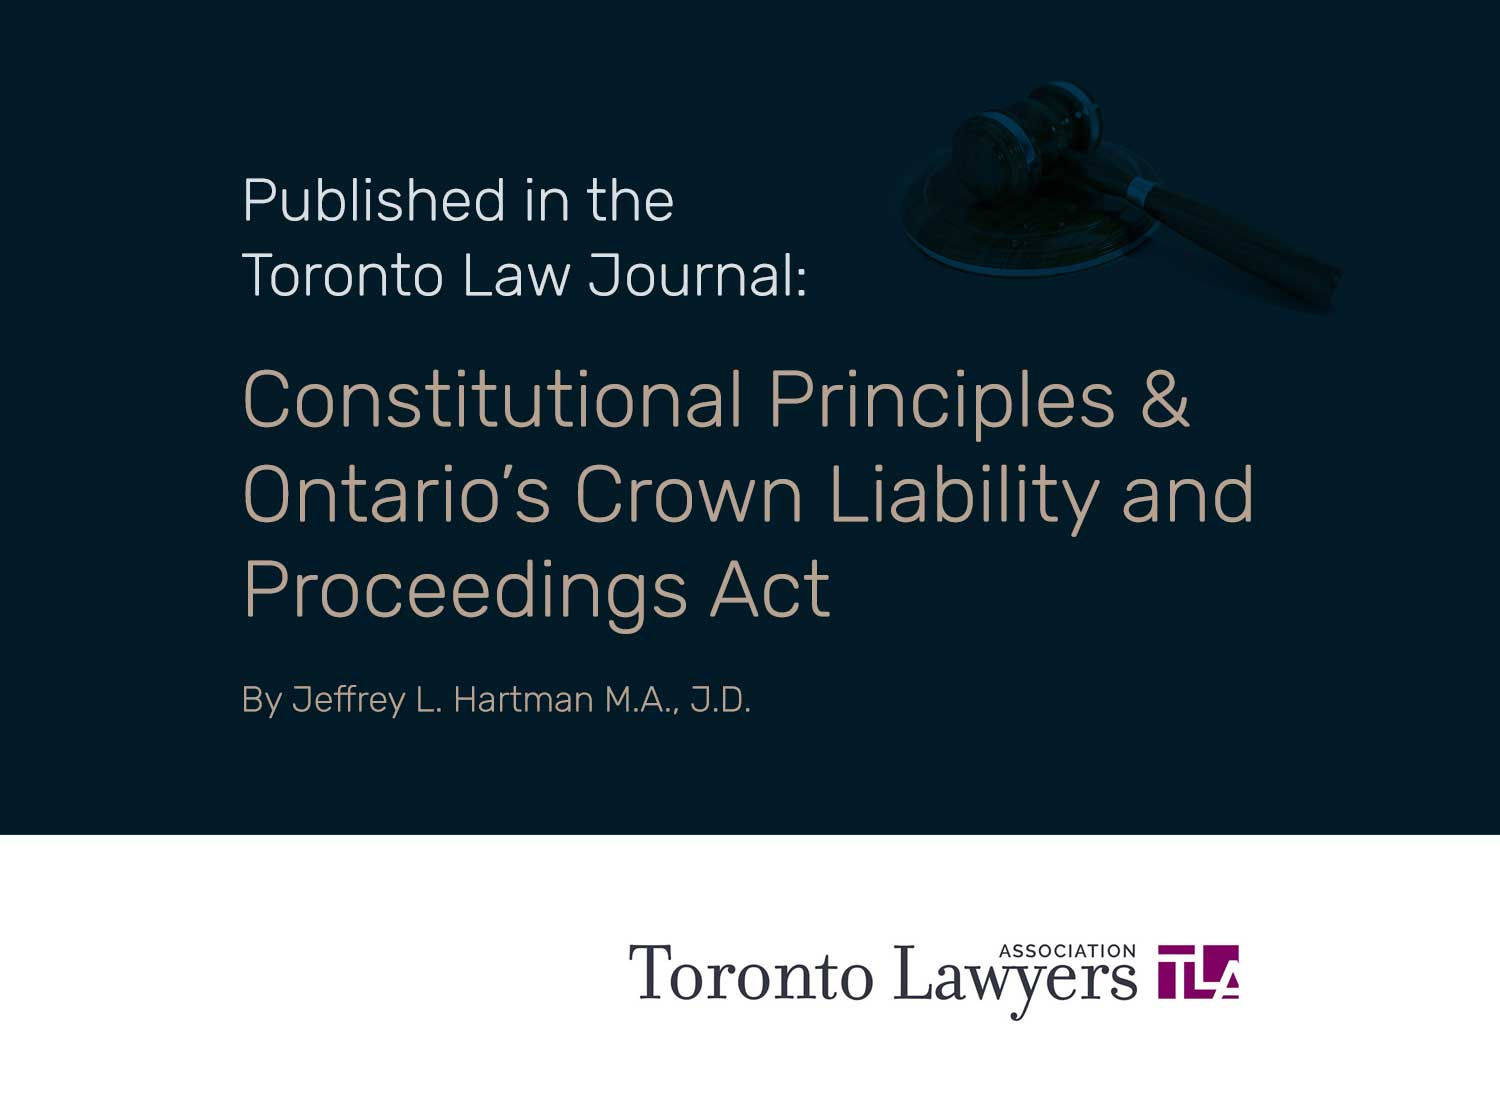 Published in the Toronto Law Journal: Constitutional Principles